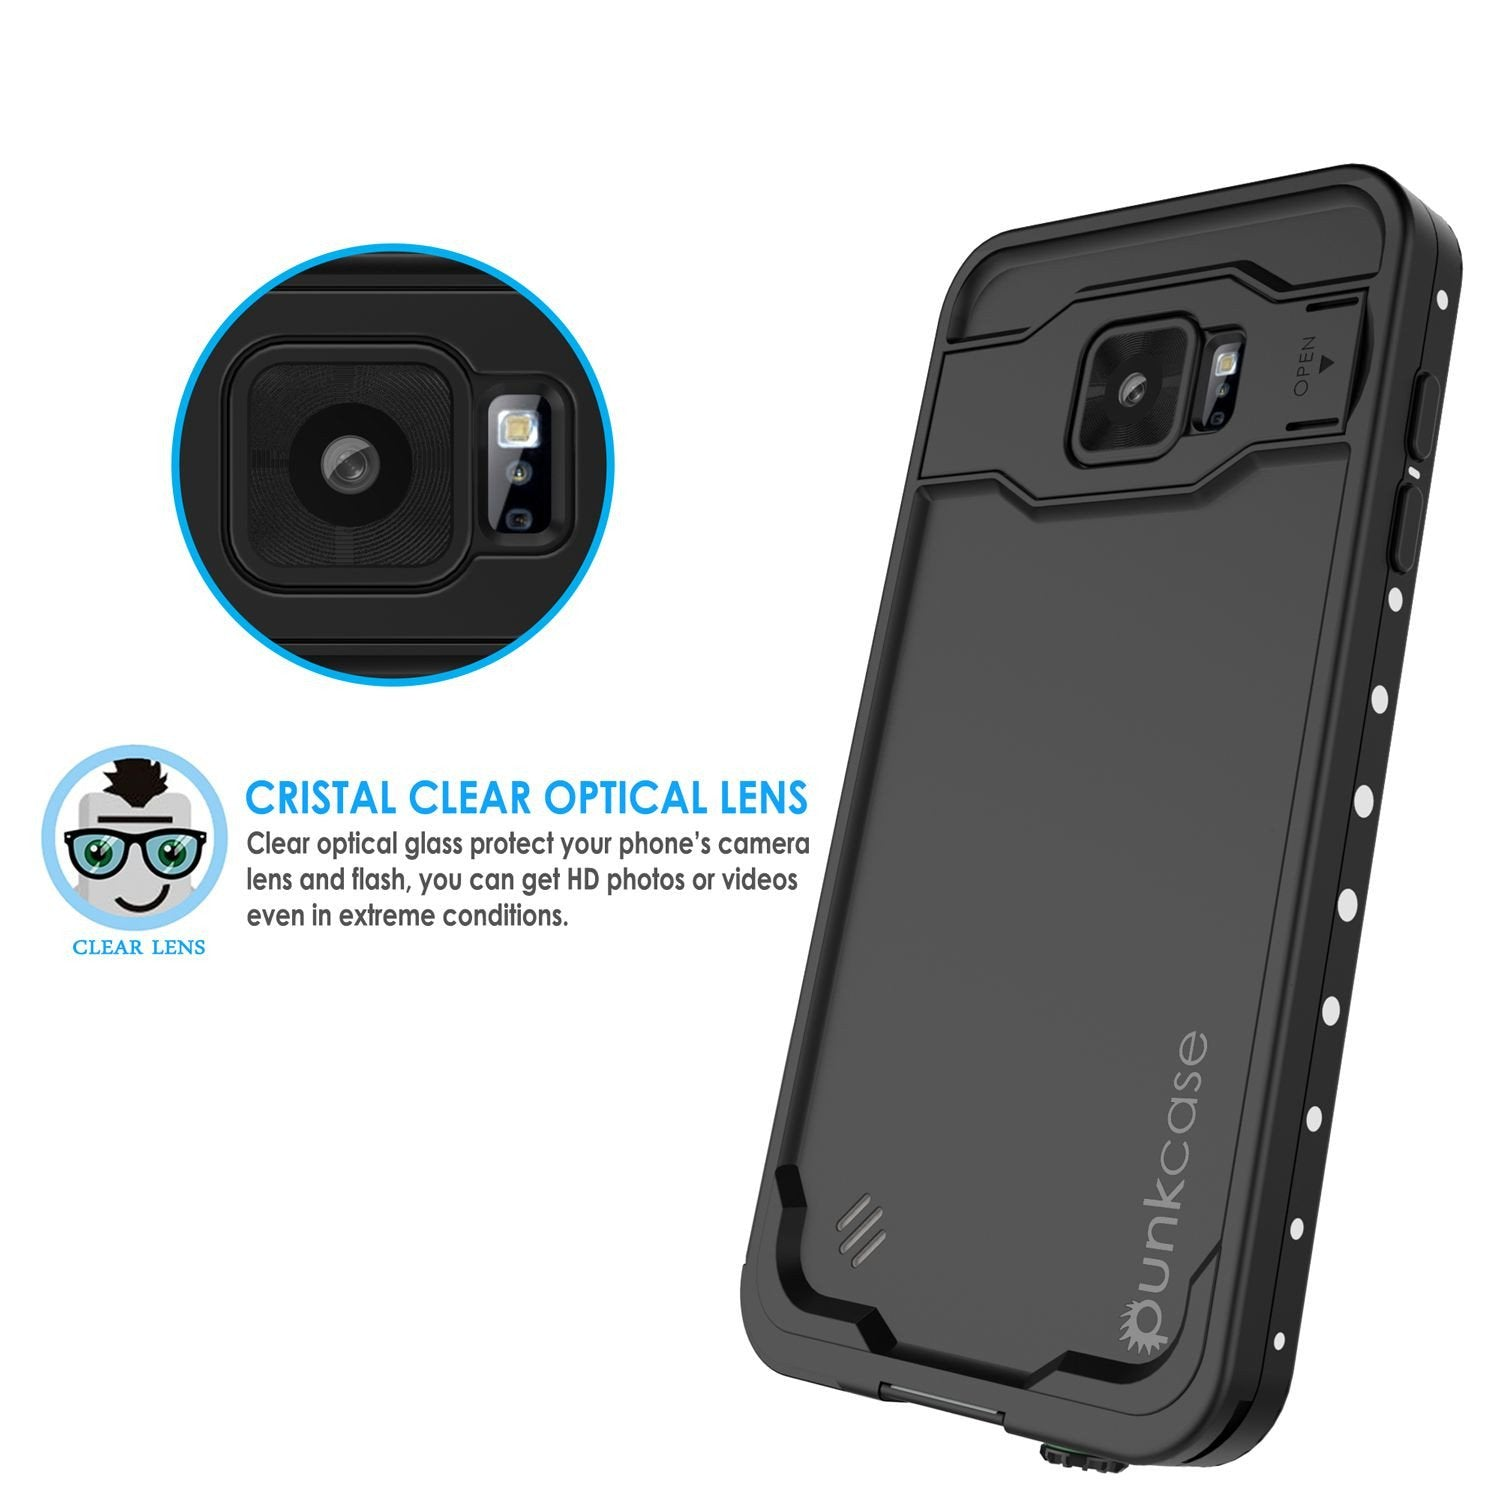 Galaxy Note 5 Waterproof Case, Punkcase StudStar White Shock/Dirt/Snow Proof | Lifetime Warranty